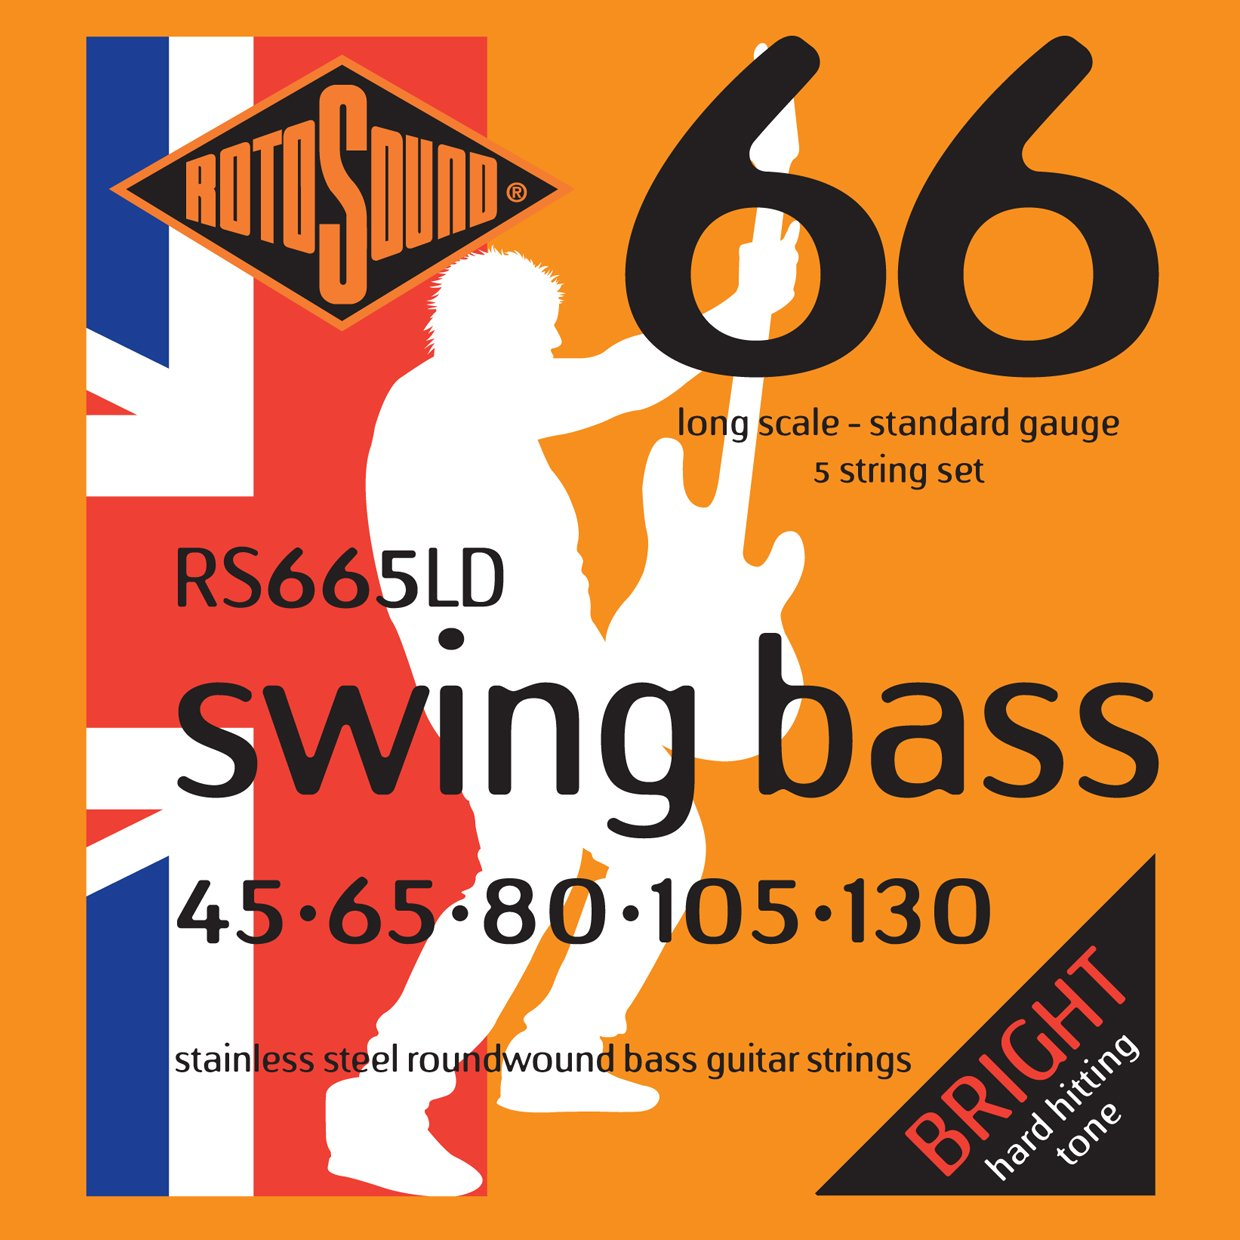 Rotosound RS665LD Standard5 String Set